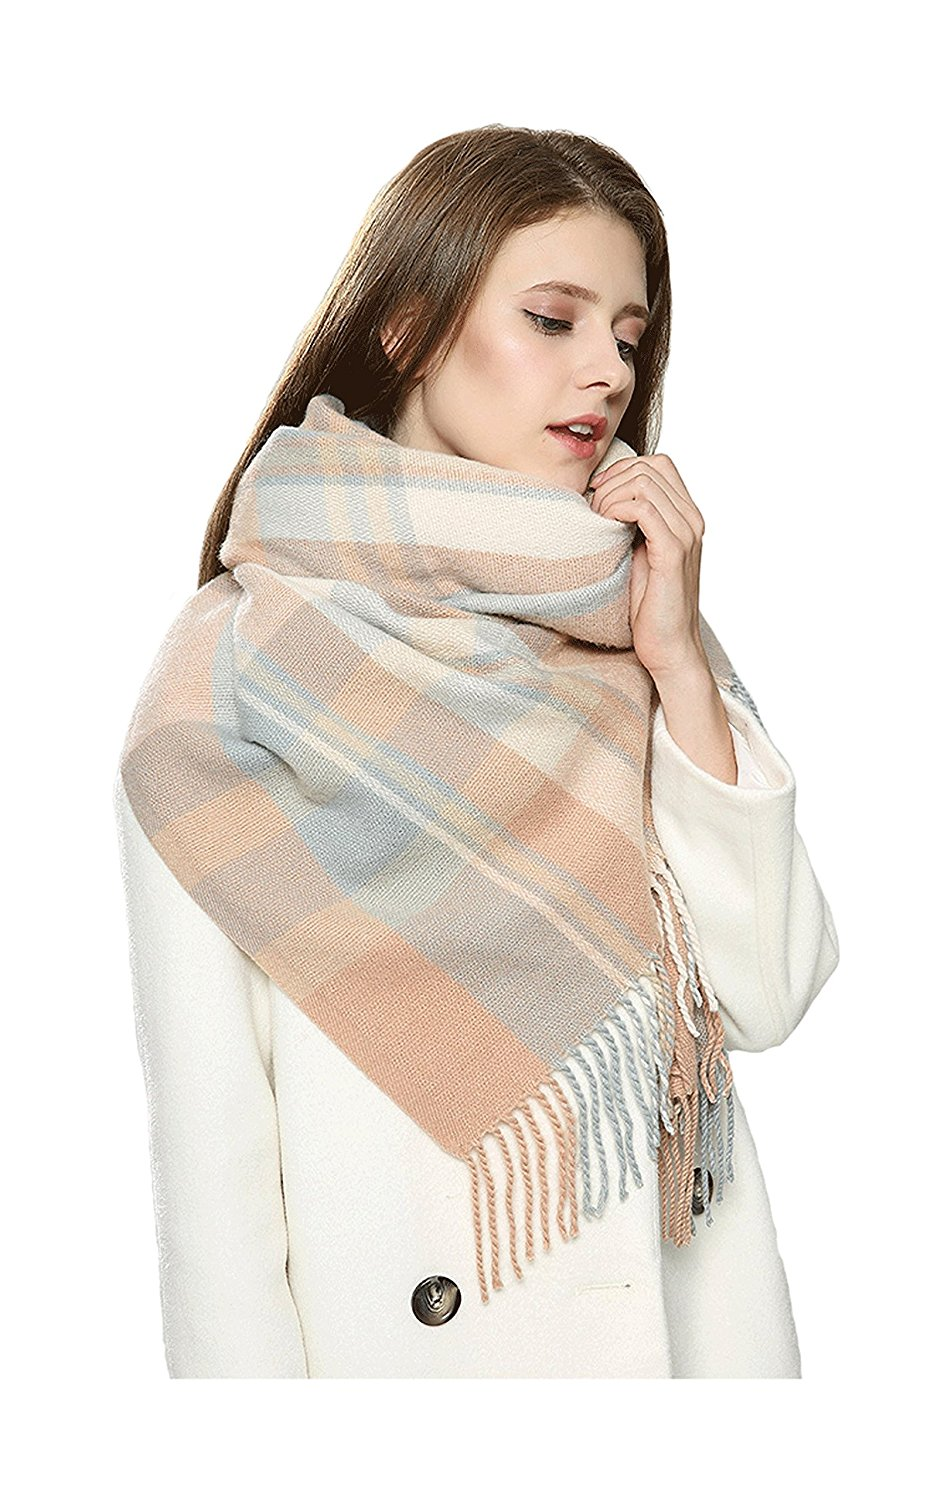 23cce894a2f0e Get Quotations · Blanket Scarf Plaid Vintage Navy Blue Serape Poncho Blanket  Scarf Tartan Multi Color Scarf-One